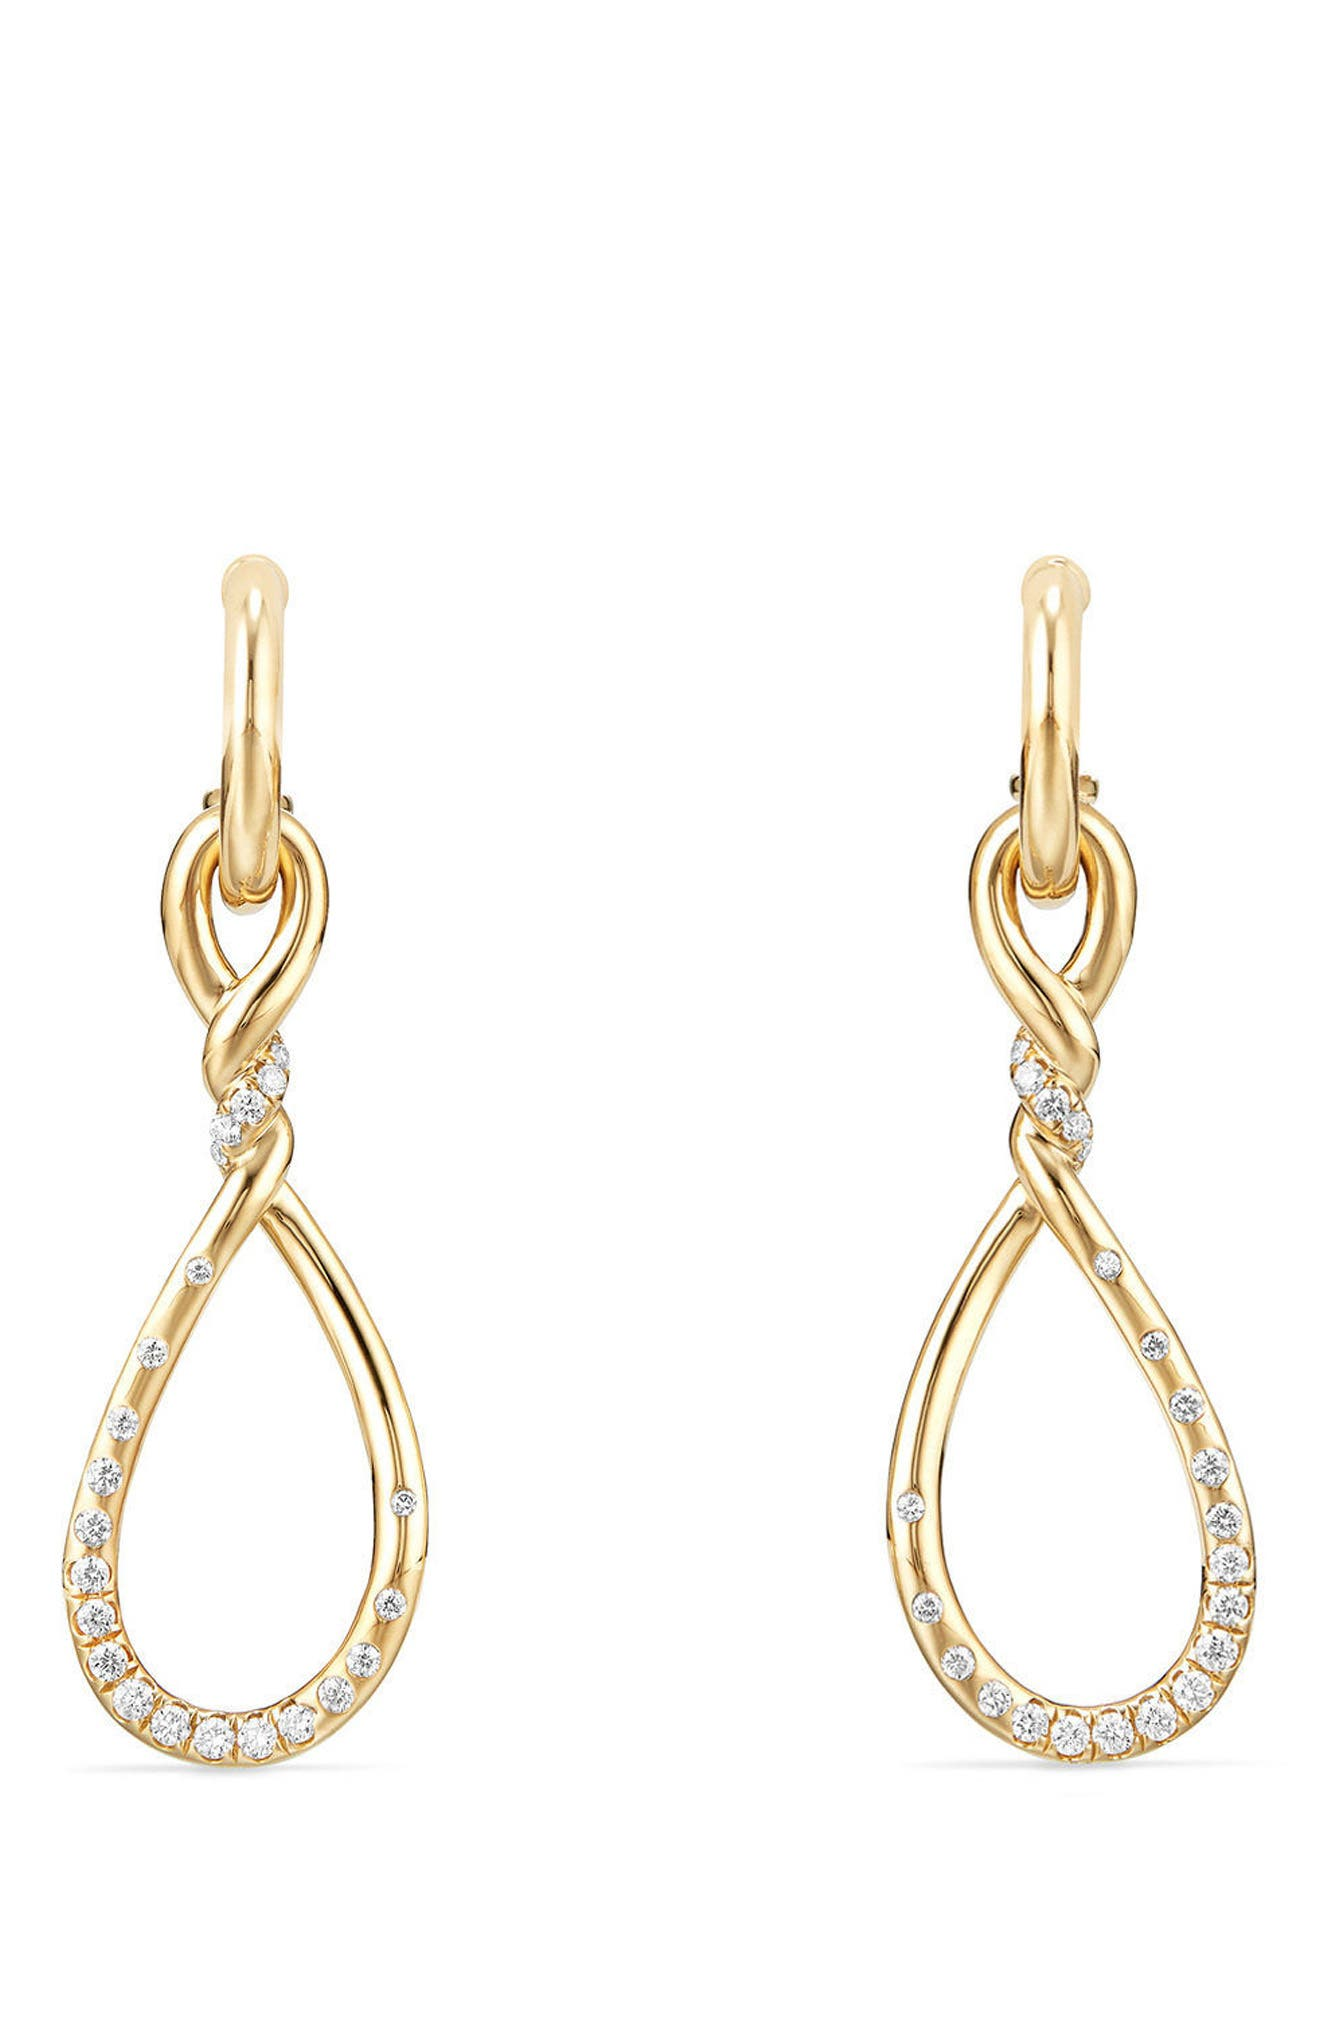 Continuance Medium Drop Earrings with Diamonds in 18K Gold,                         Main,                         color, Yellow Gold